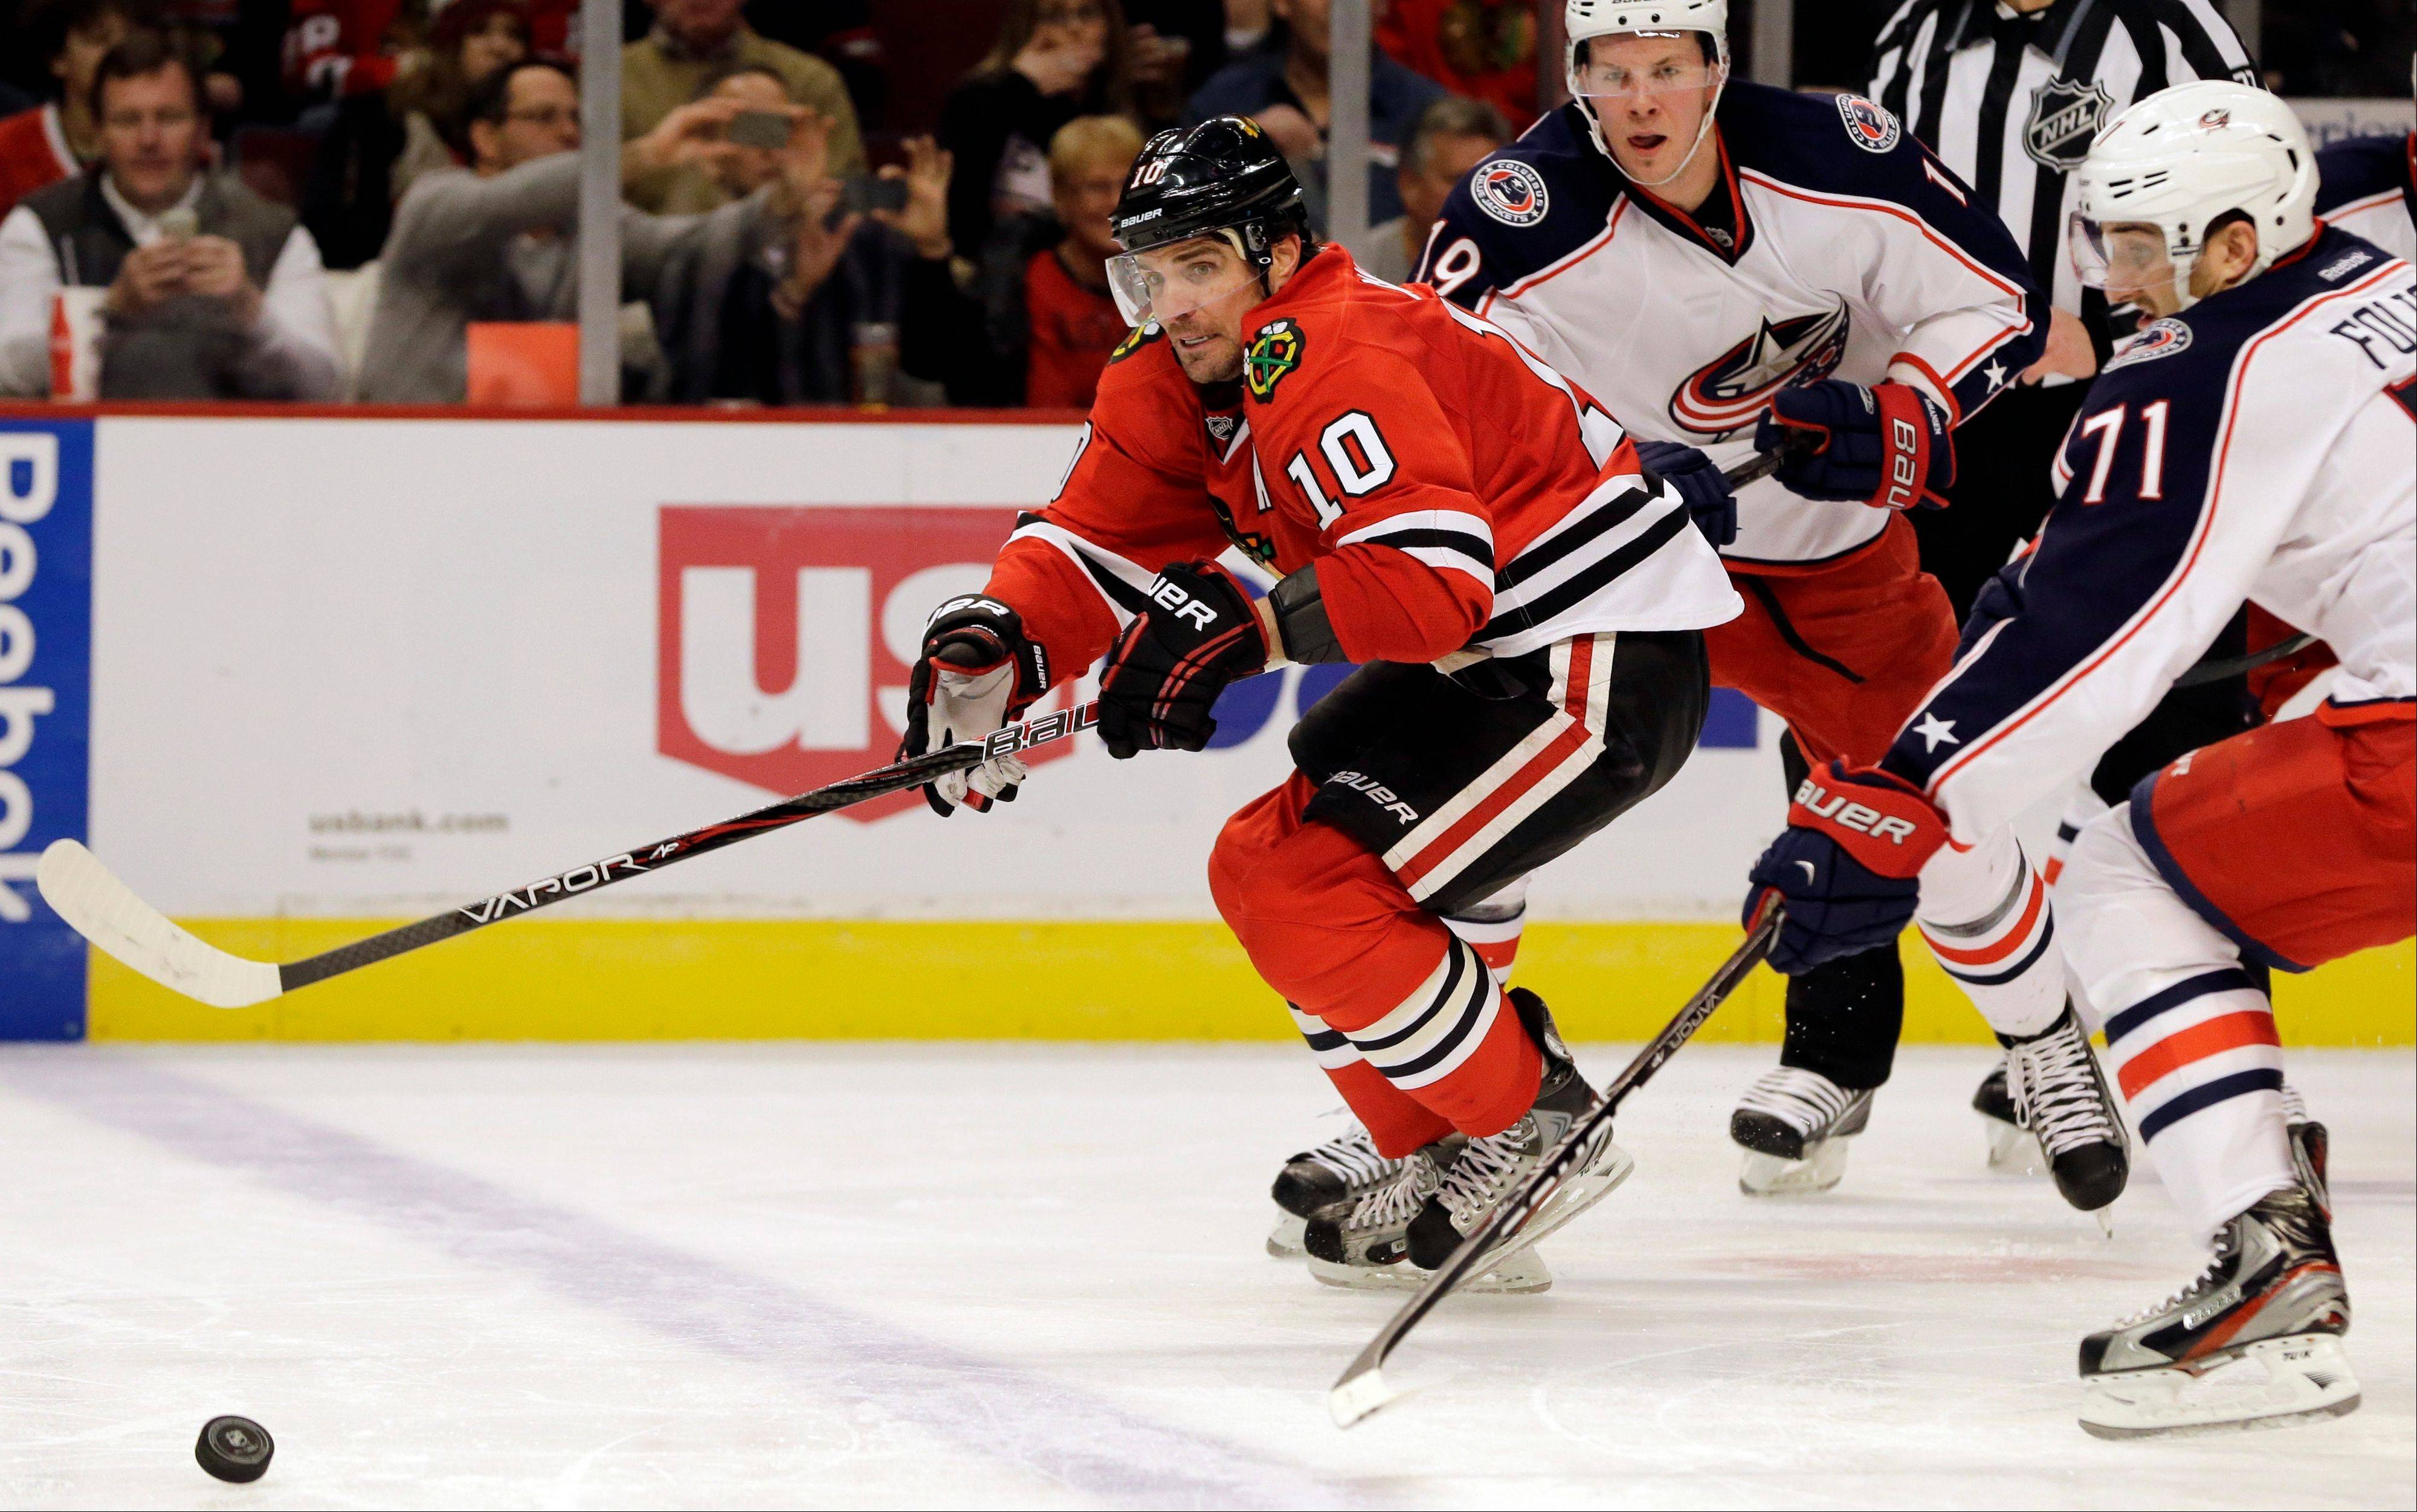 The Blackhawks' Patrick Sharp, out since March 6 with a shoulder injury, returned to practice Thursday.